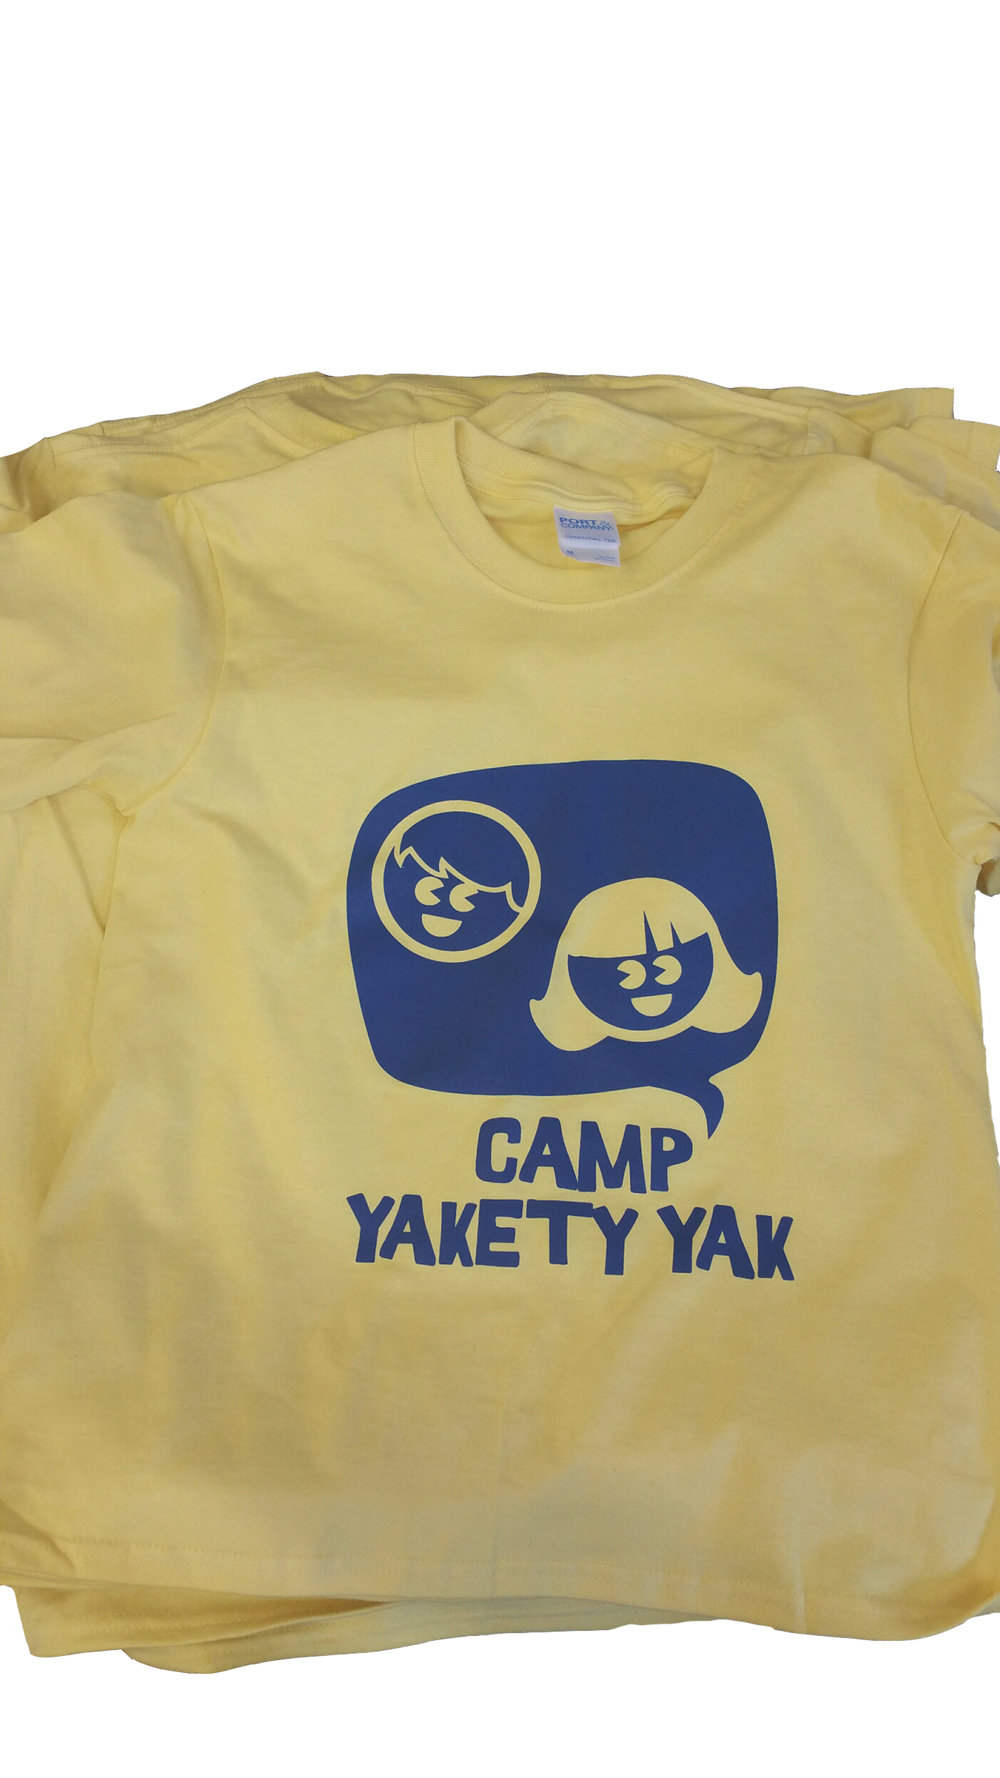 Tees for the campers at Camp Yakety Yak, Lake Oswego, 2017.